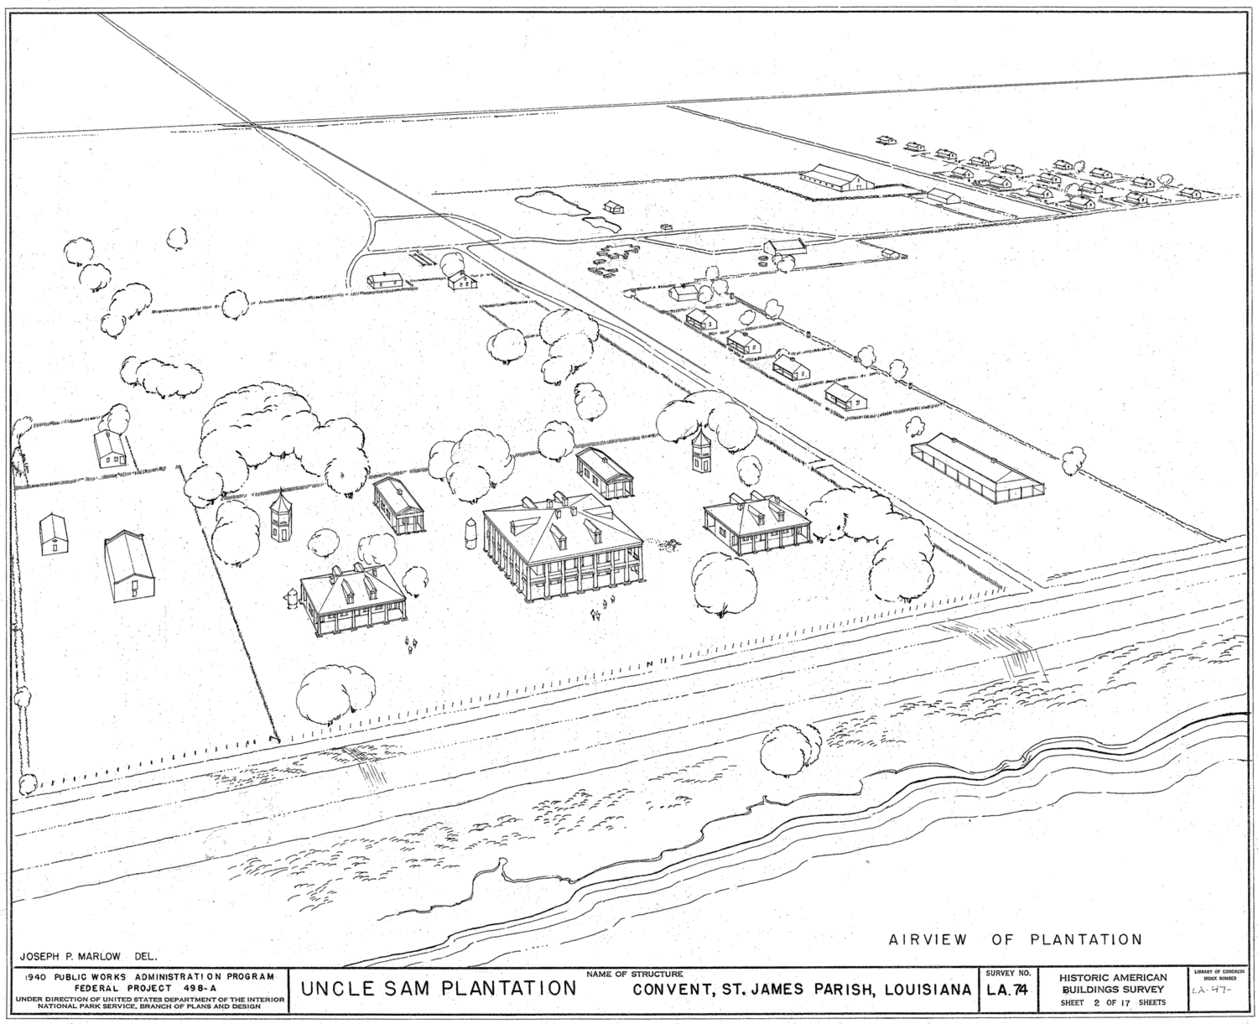 File:Aerial perspective drawing of Uncle Sam Plantation